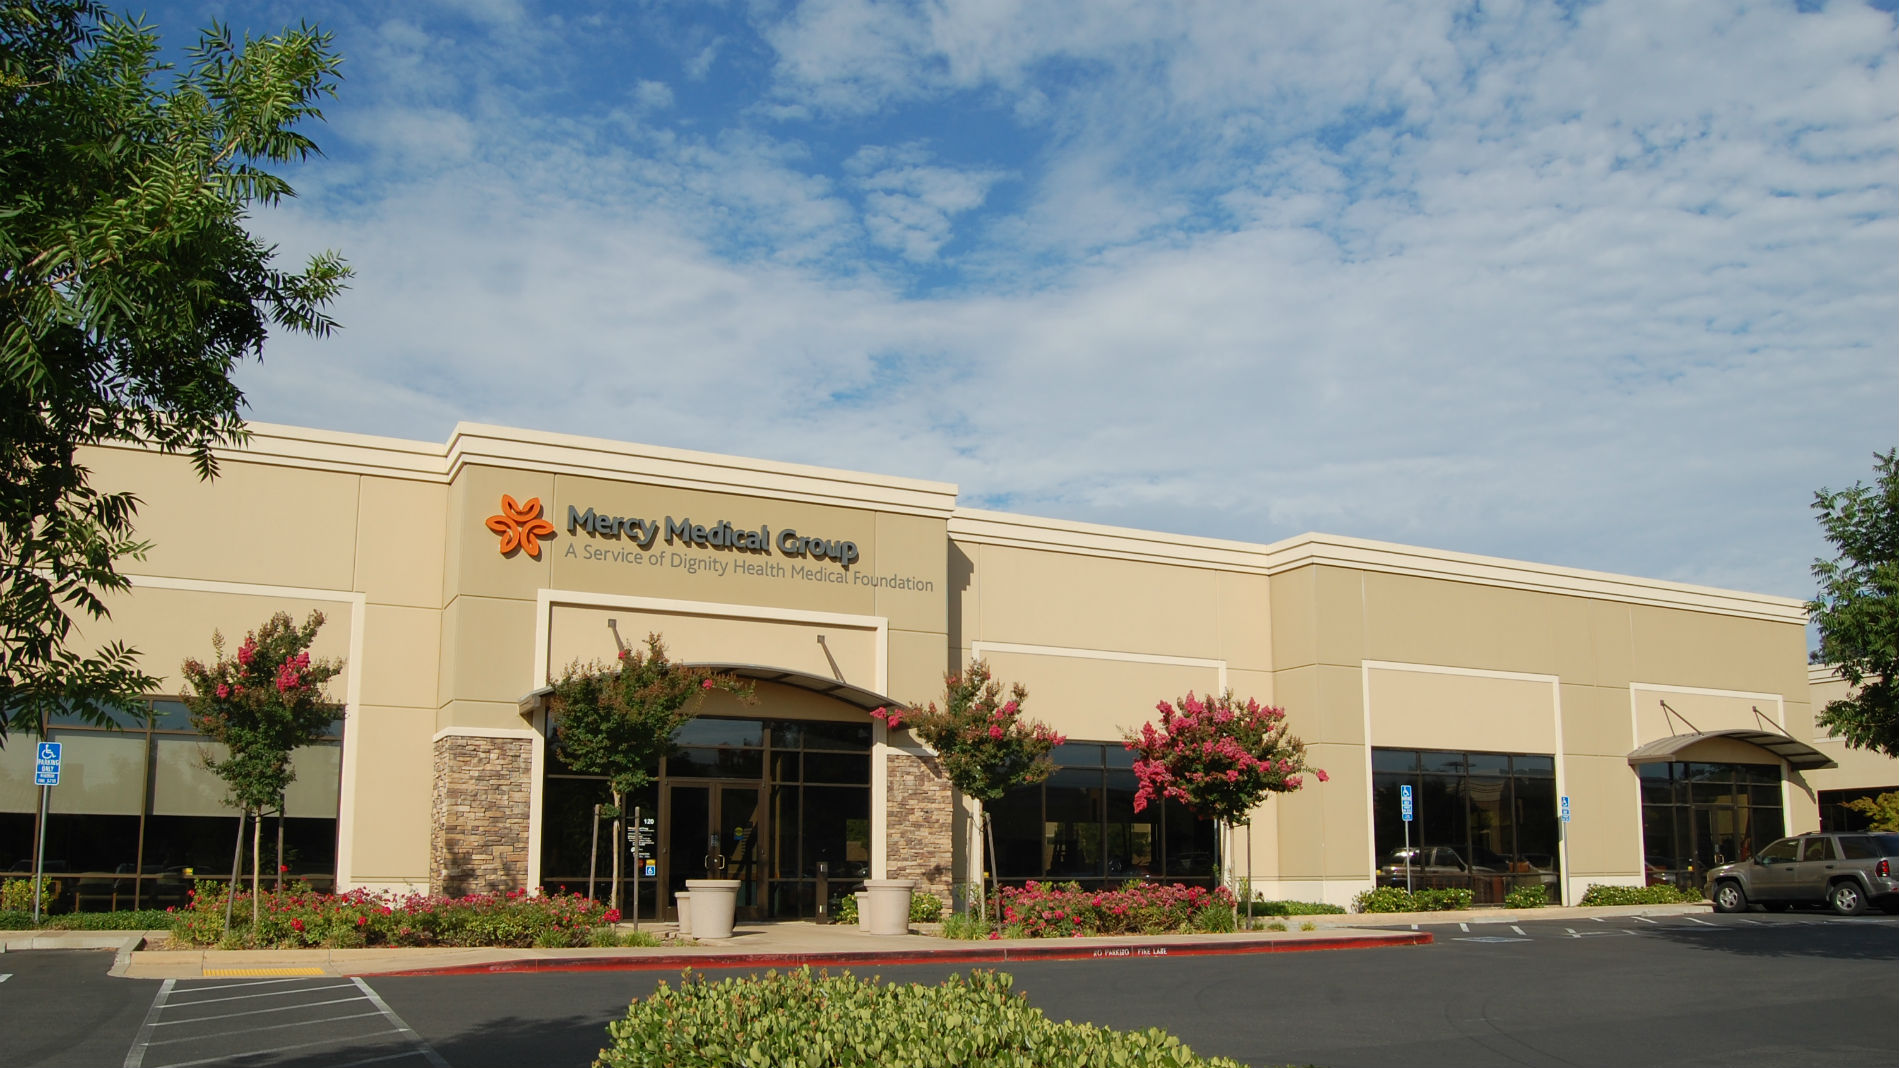 Mercy Medical Group - Folsom, Primary Care